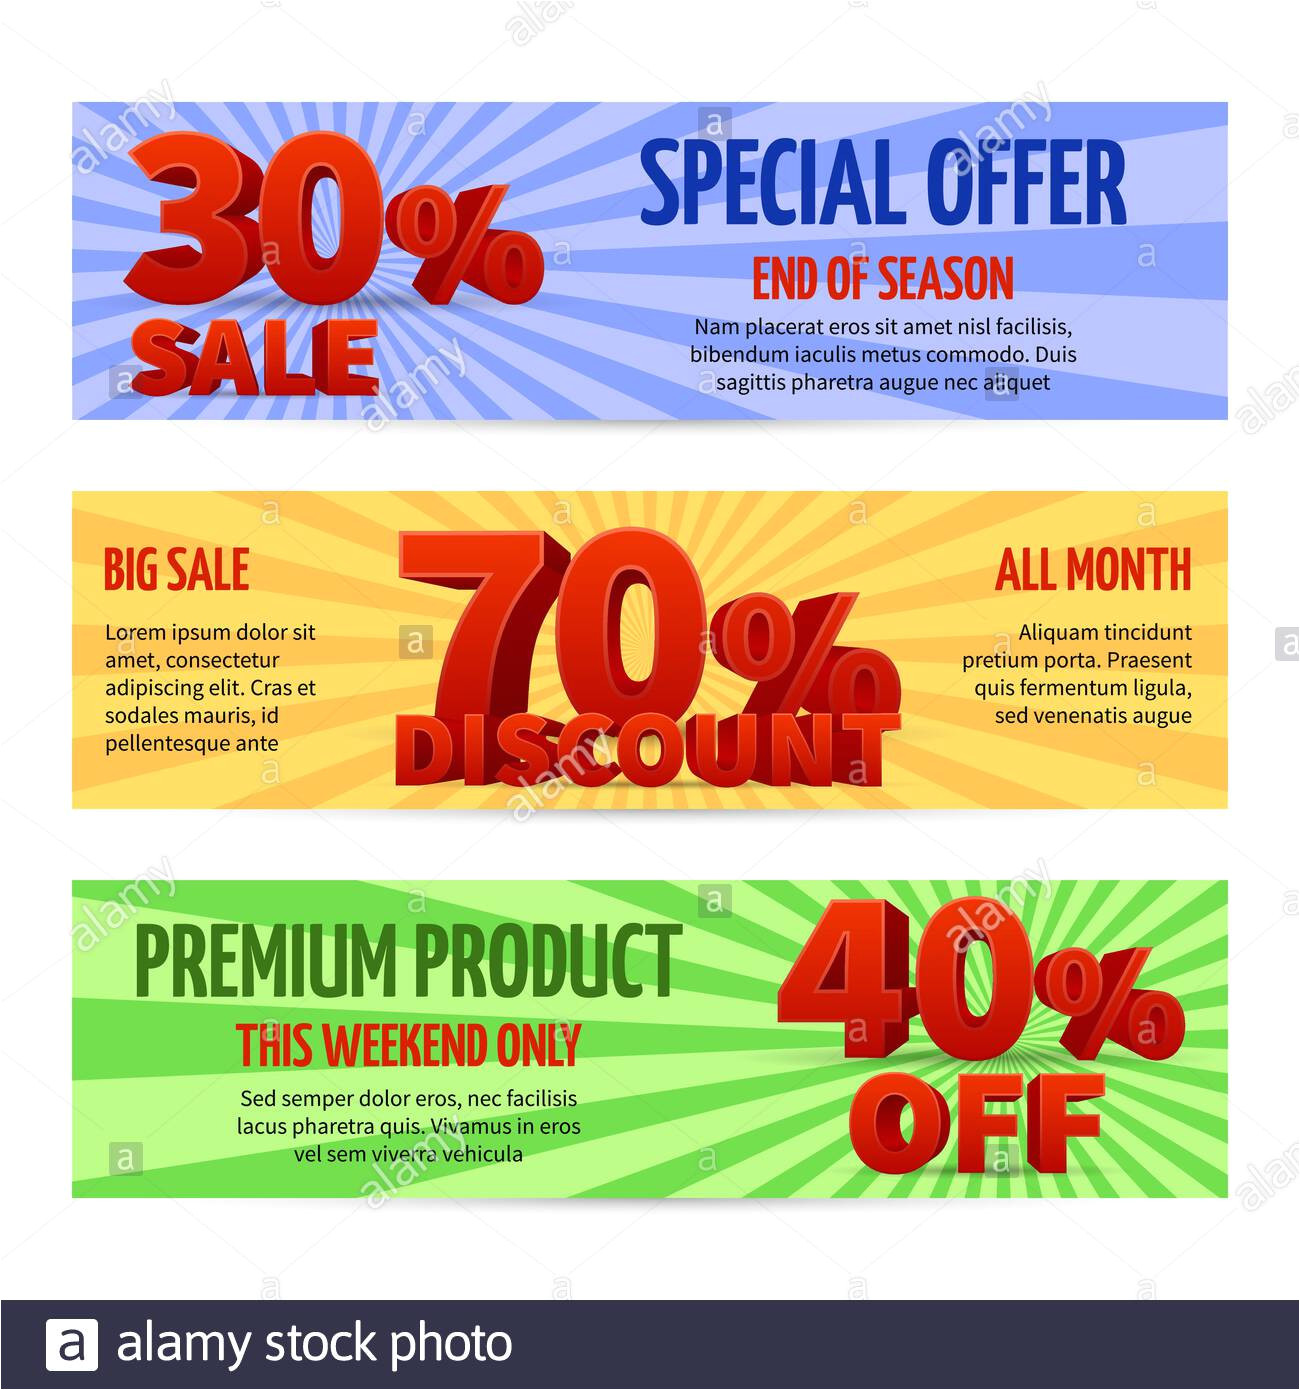 discount voucher sale coupon label designs special offer banners with percent off and big sale illustration of discount cards 2b09k3p jpg